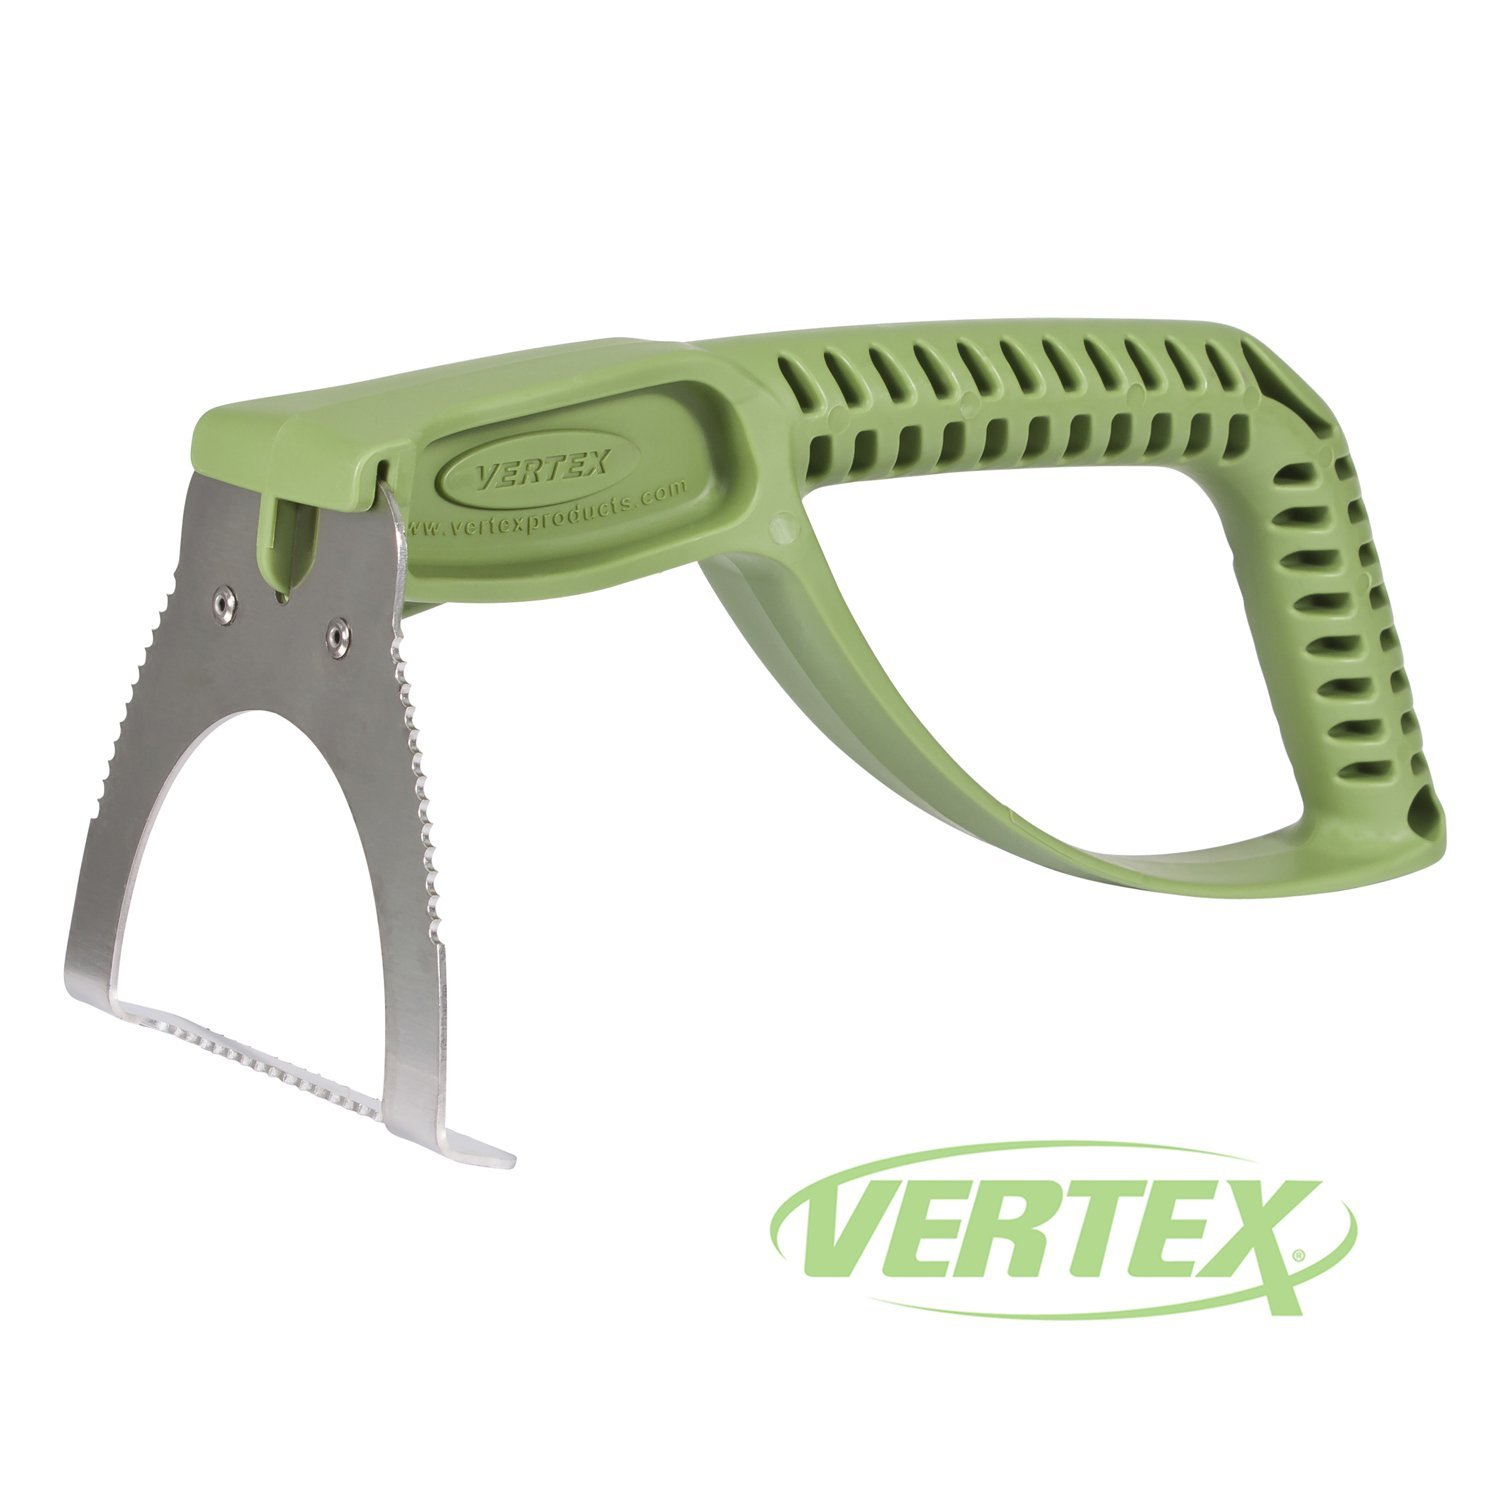 NaturalGripx2122; Egonomic Weeder Garden Tool by Vertex174; with Stainless Steel Head and Comfort Grip Handle - Made in USA - Model P1409